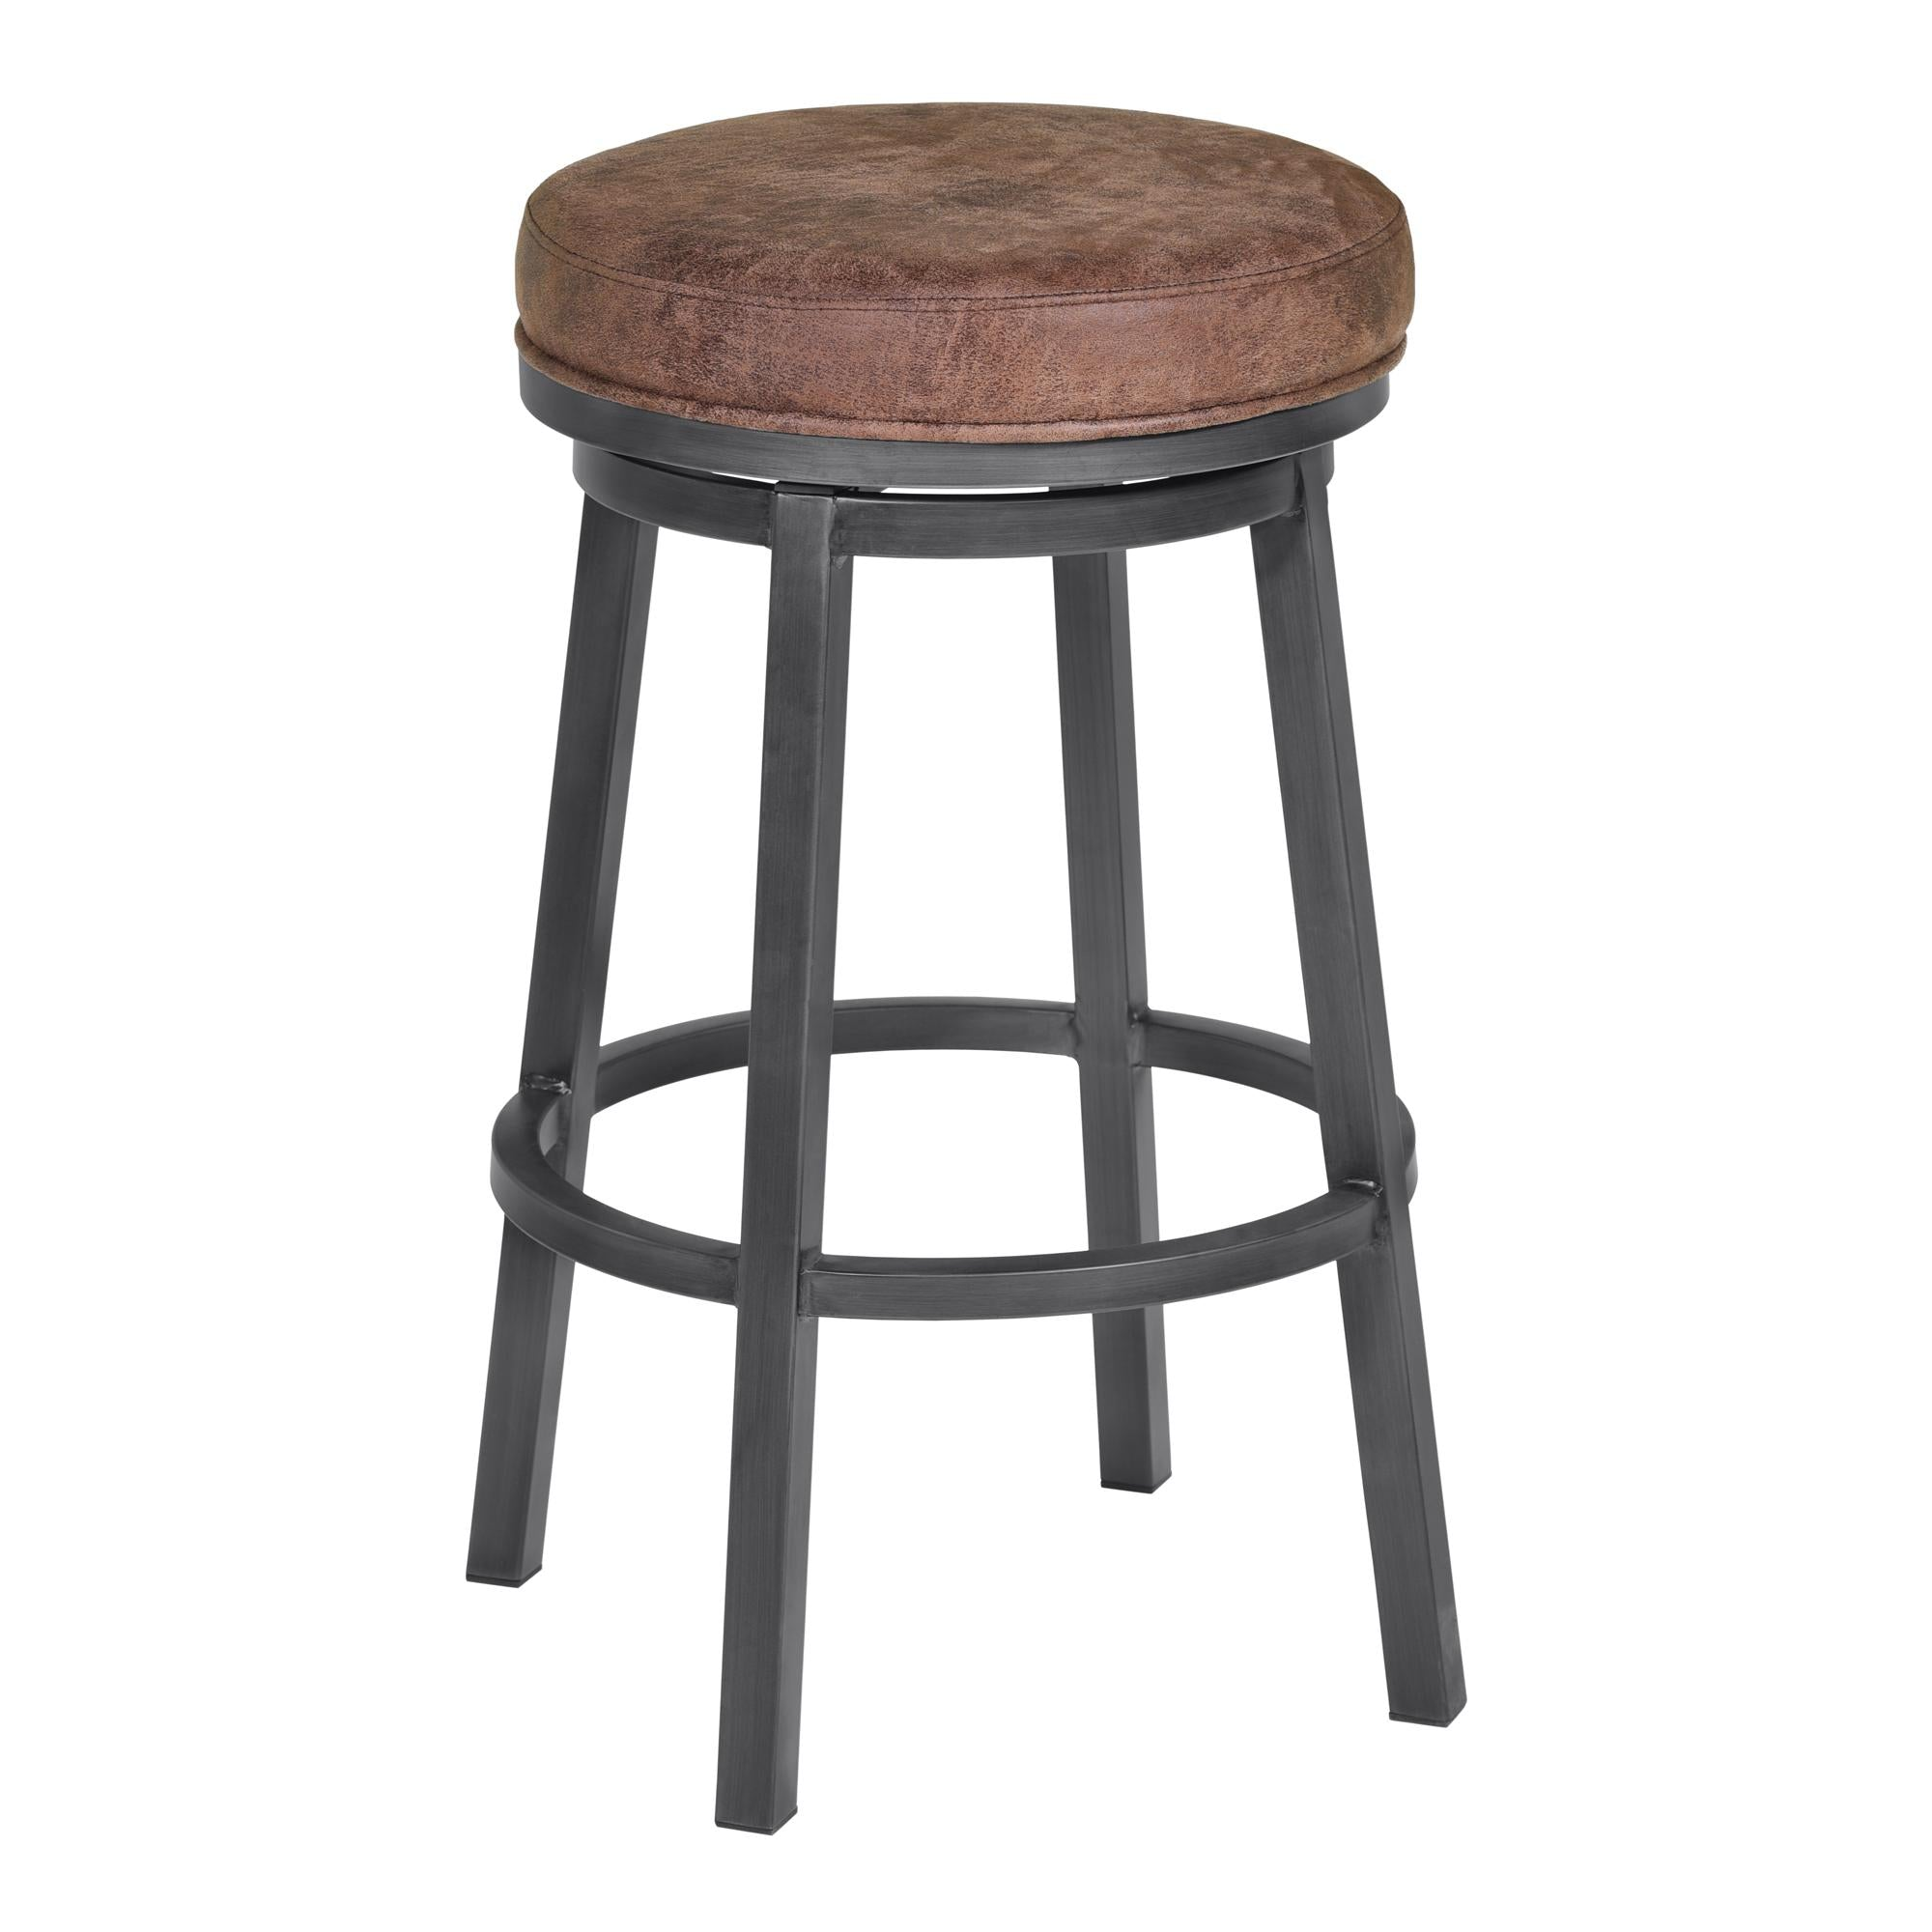 Armen Living Tilden 26' Counter Height Metal Swivel Backless Barstool in Bandero Tobacco Fabric and Mineral Finish